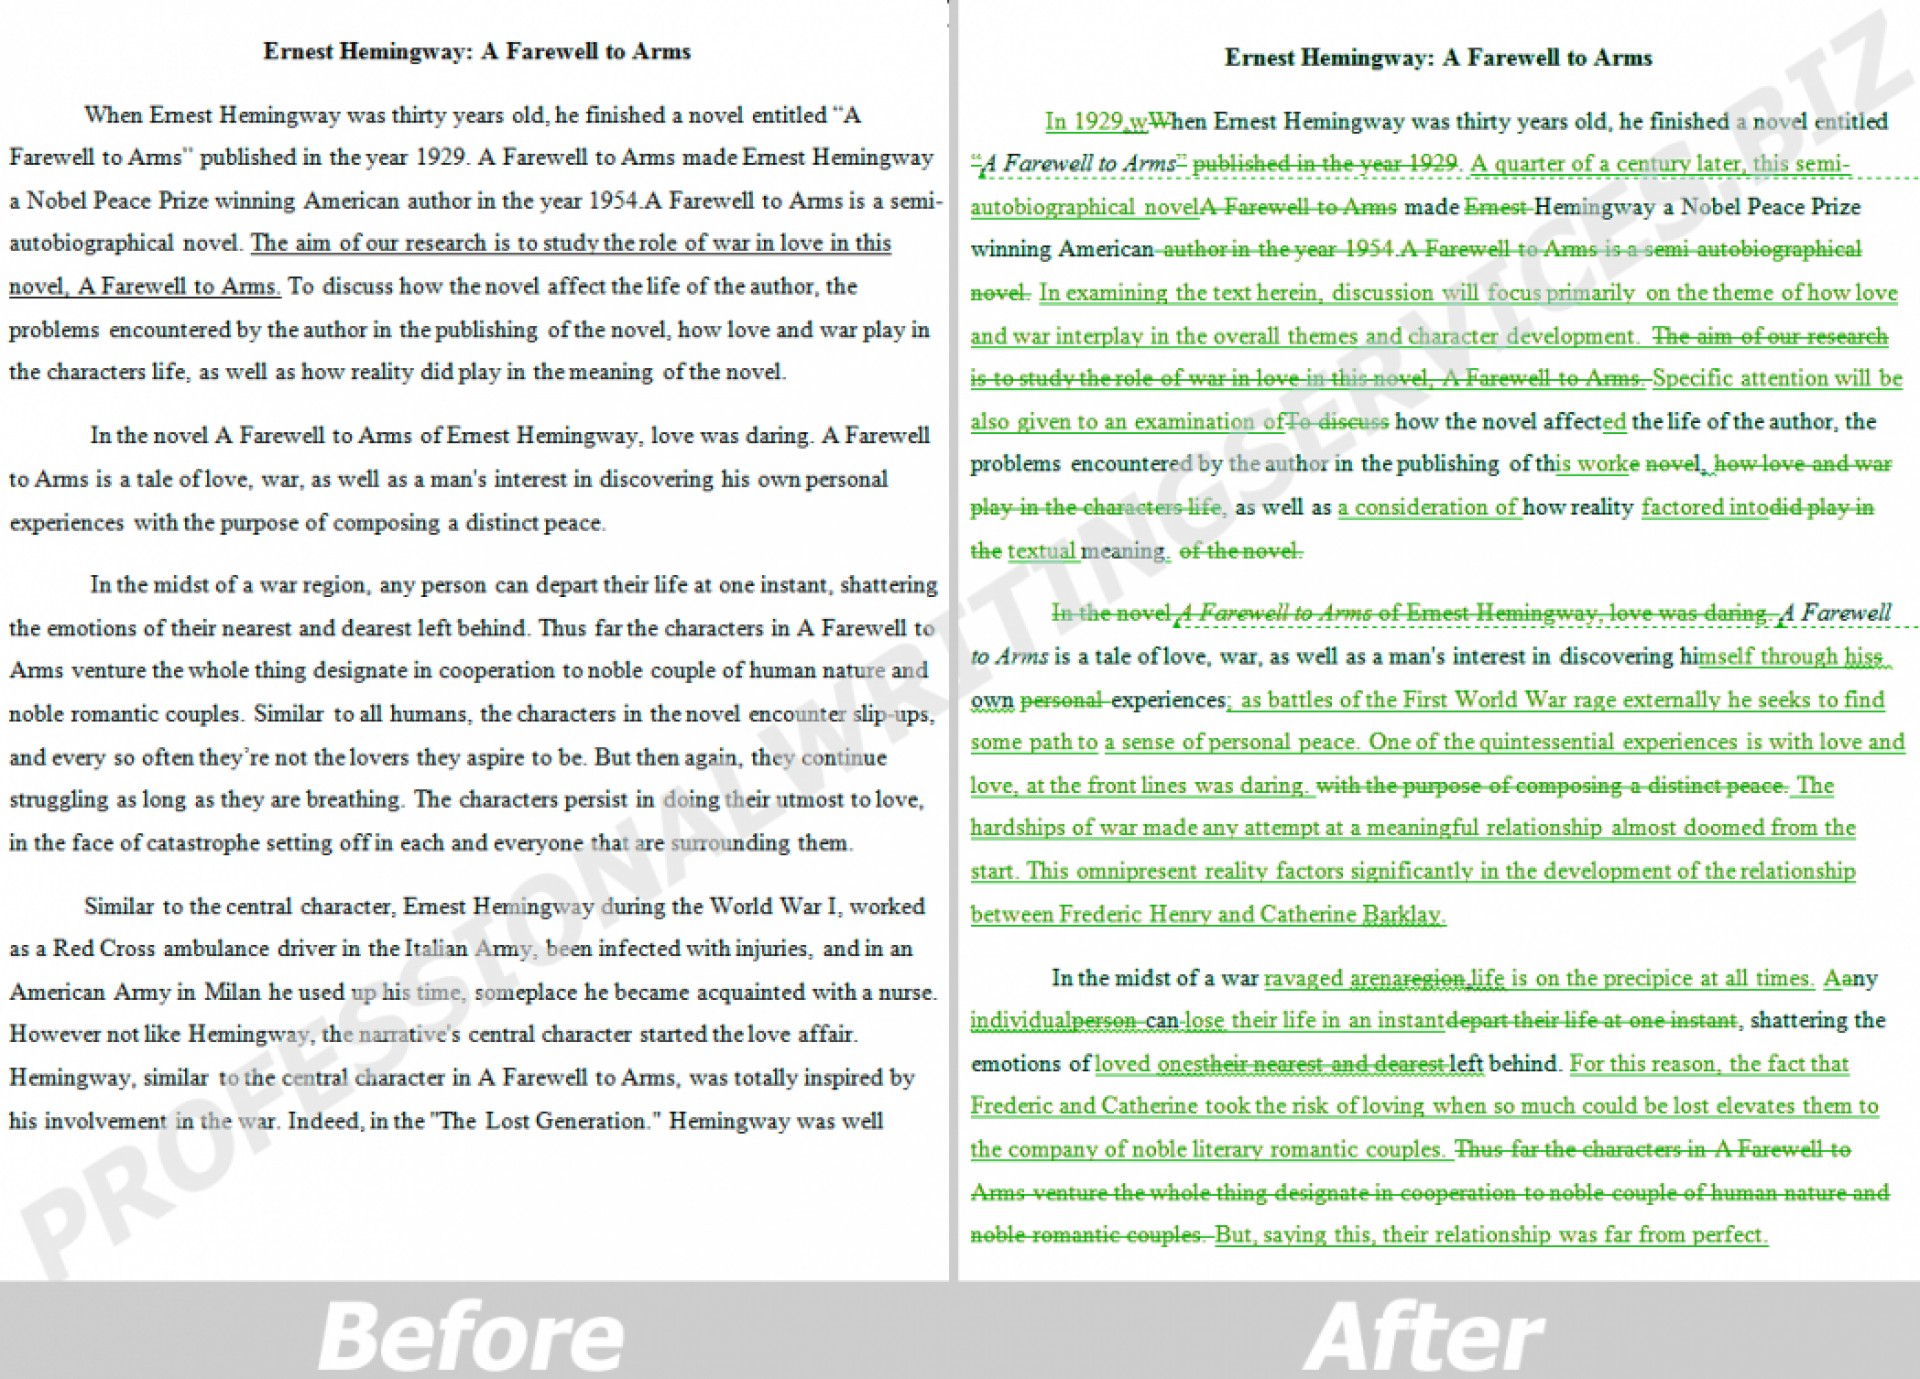 014 Essay Example Best Writing Websites That Write Essays Website Top Services Reviews Professionalwritingservices S Service Uk Unique 1920